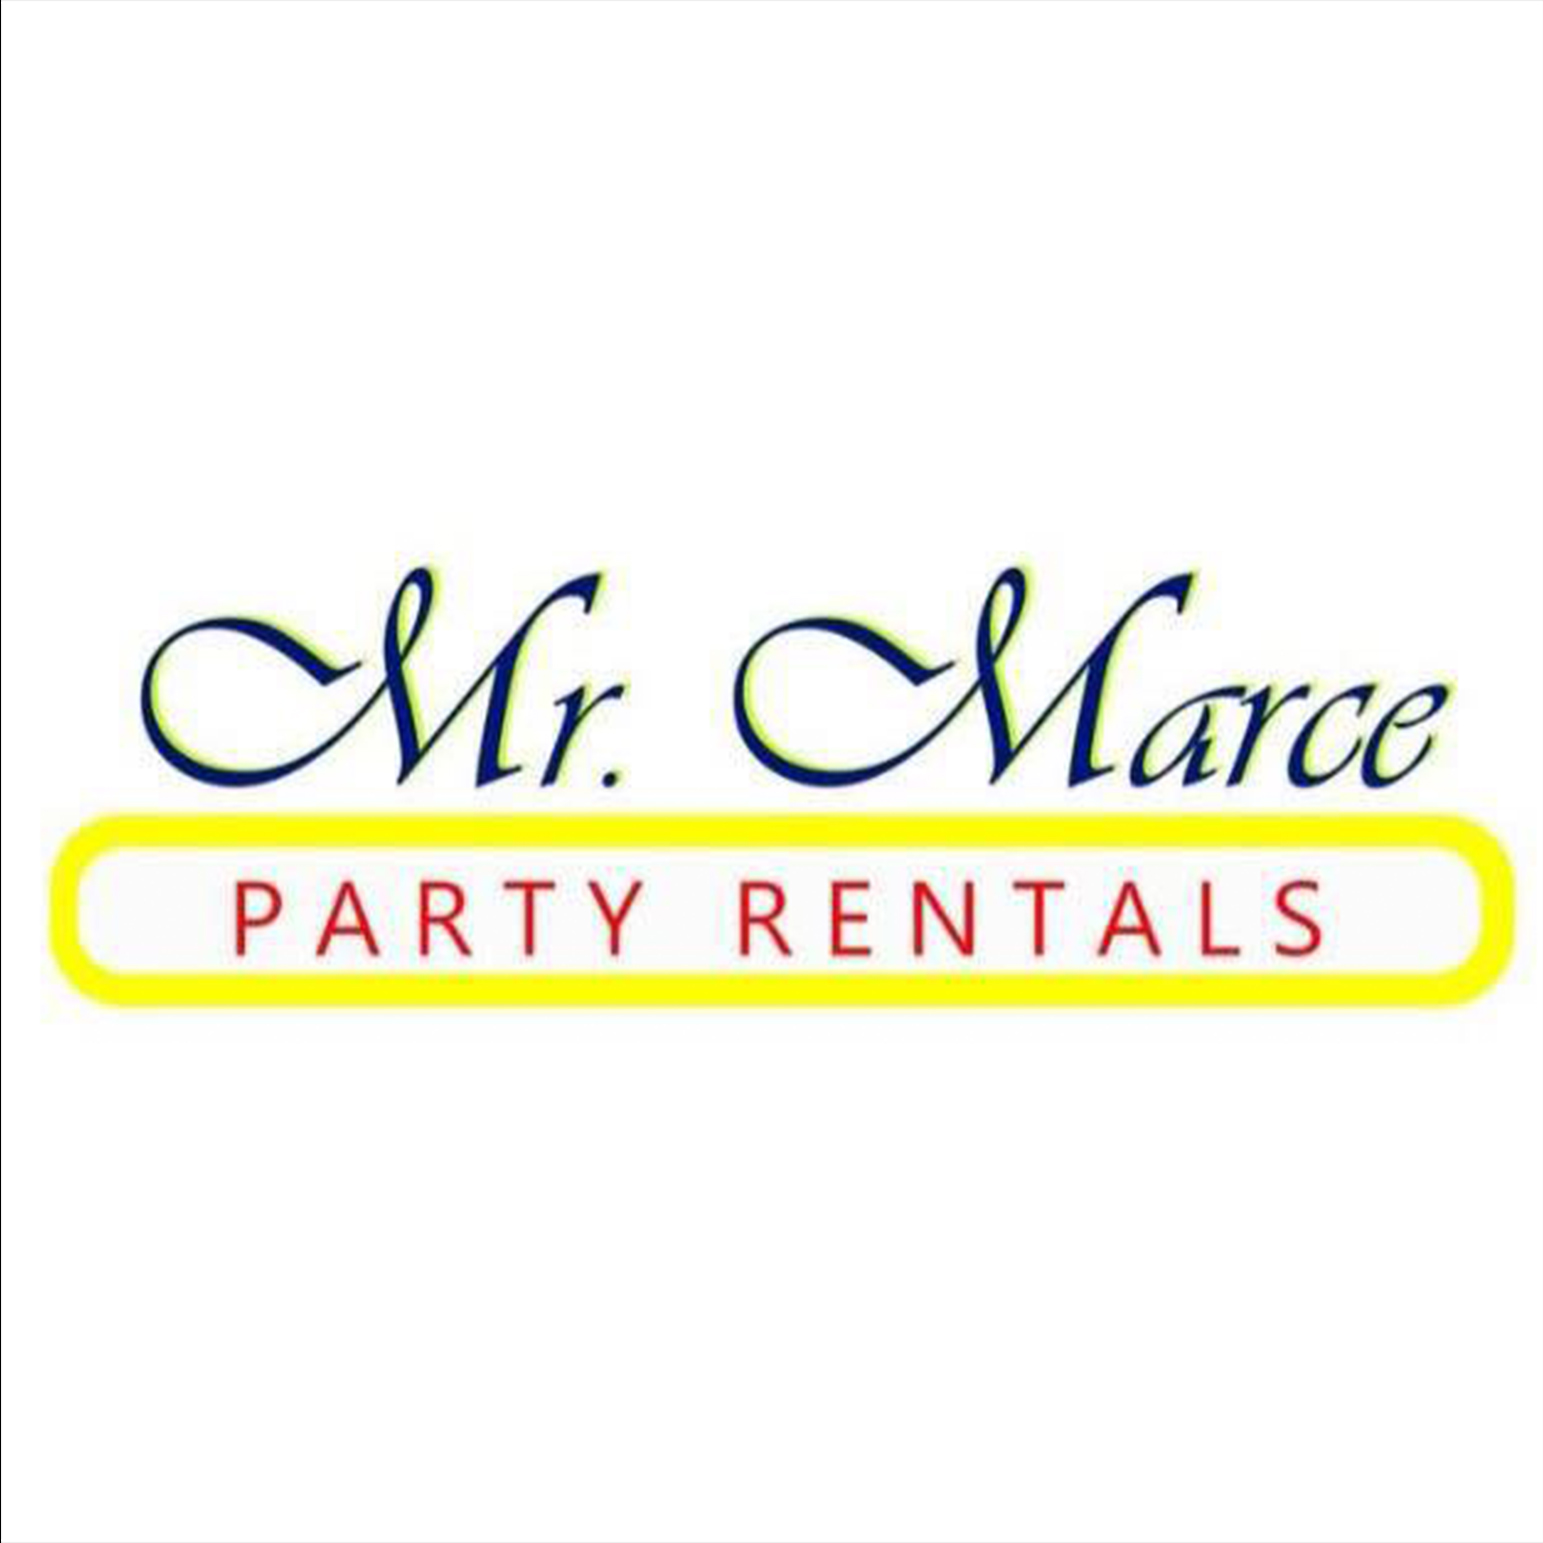 Mr. Marce Party Rentals